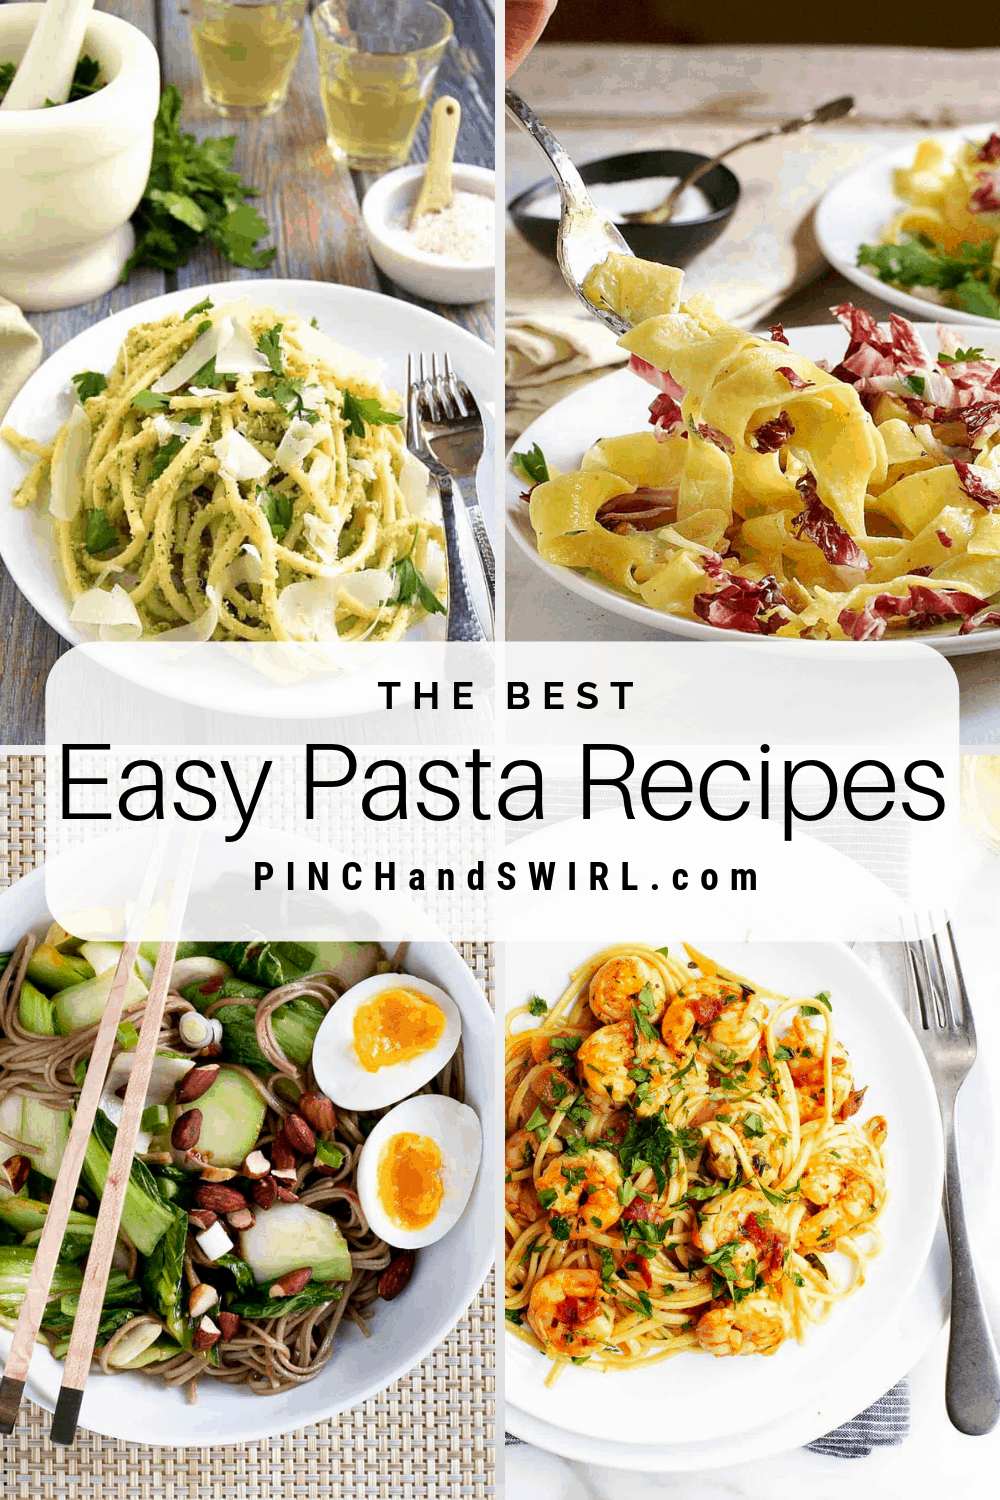 With Just A Few Ingredients You Can Make These Quick And Healthy Pasta Recipes Simple To Prepare And A Wid Easy Pasta Recipes Easy Pasta Italian Recipes Easy